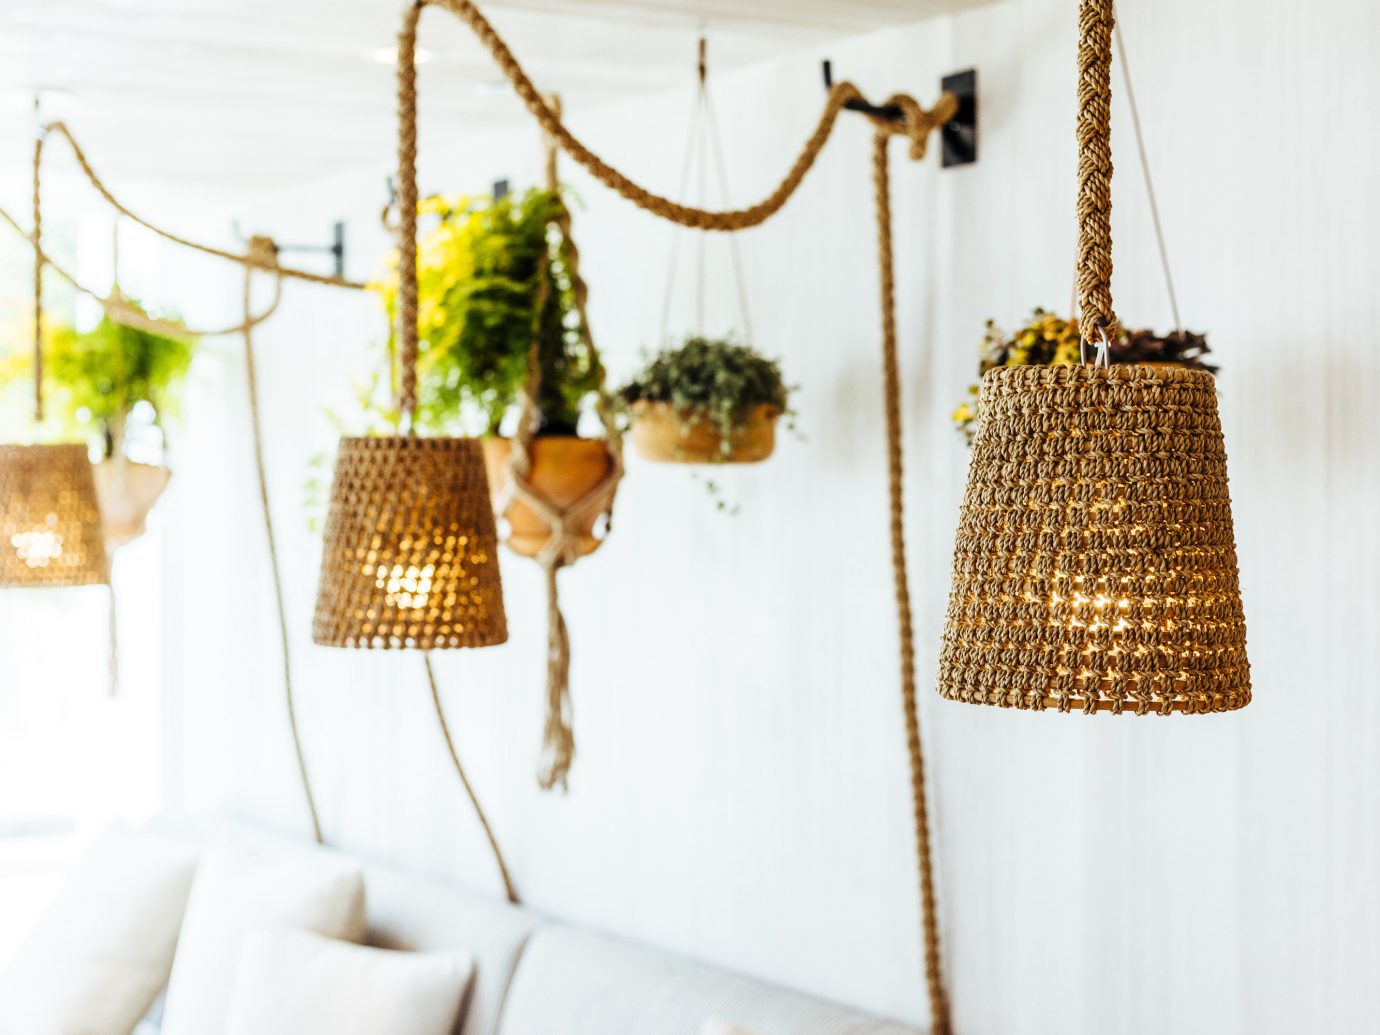 Food + Drink Girls Getaways Hotels Jetsetter Guides shopping Style + Design Weekend Getaways indoor yellow product design lighting accessory brass lamp lampshade furniture